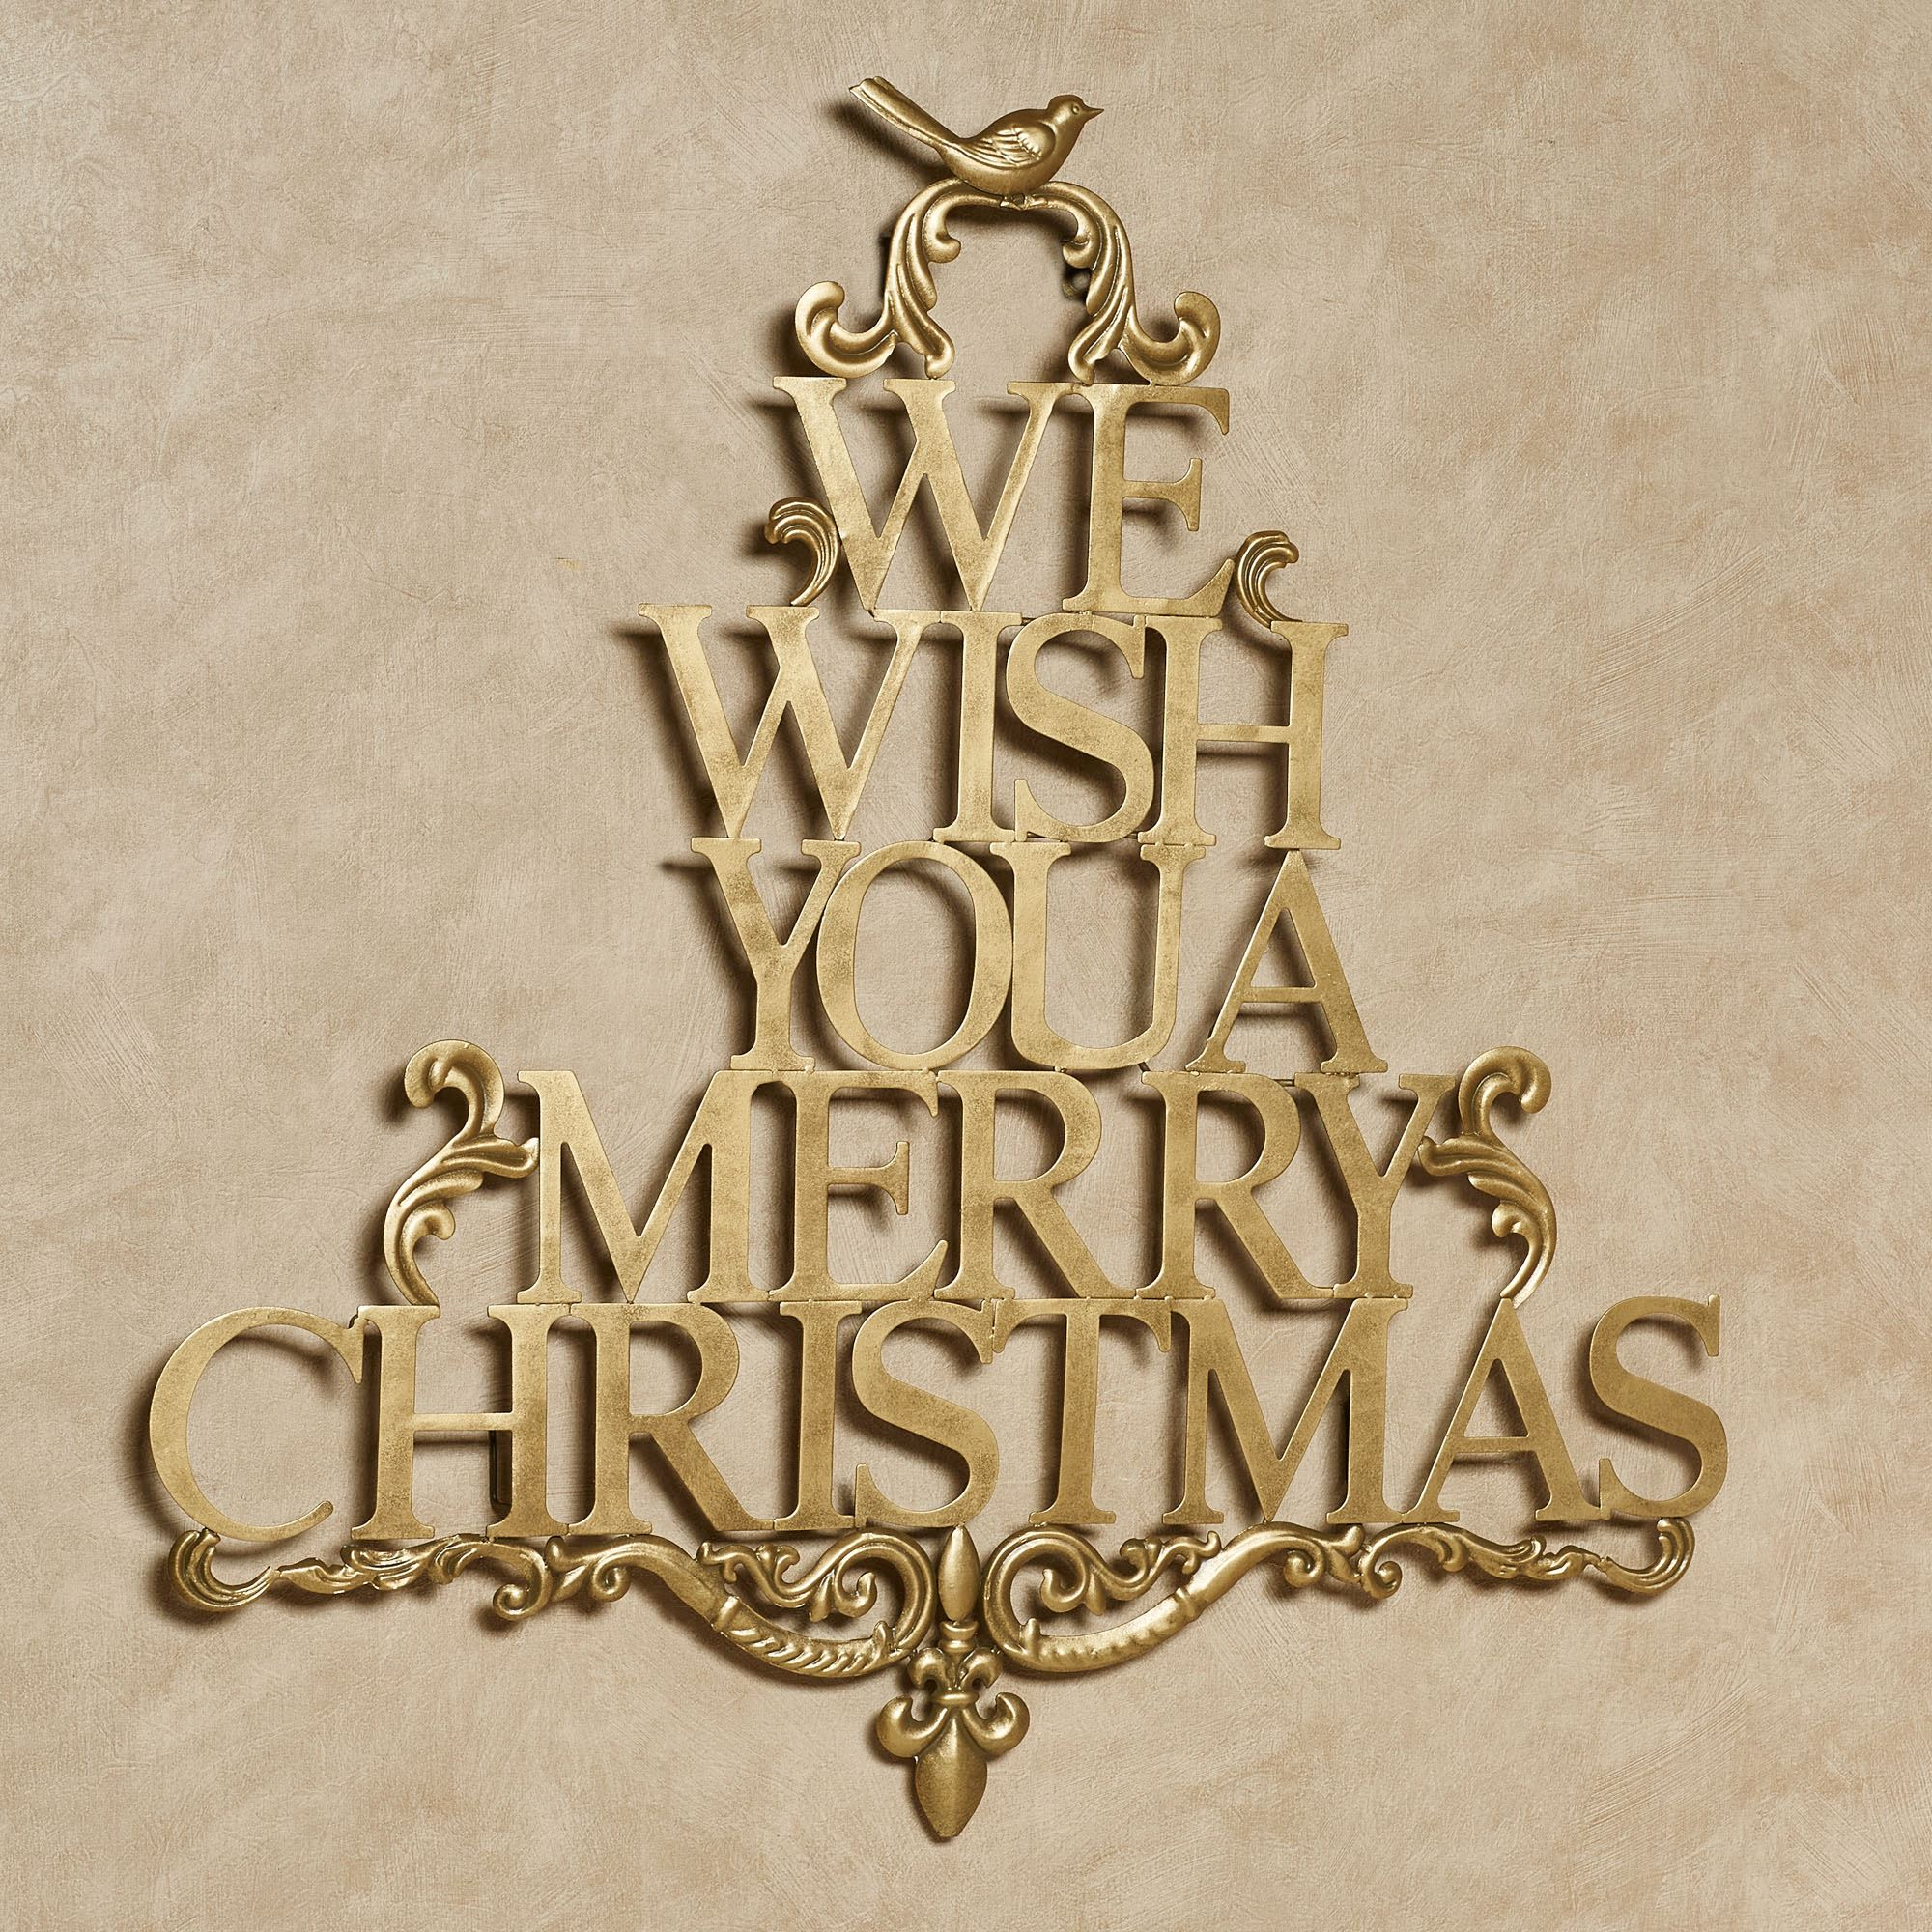 We Wish You A Merry Christmas Metal Wall Art